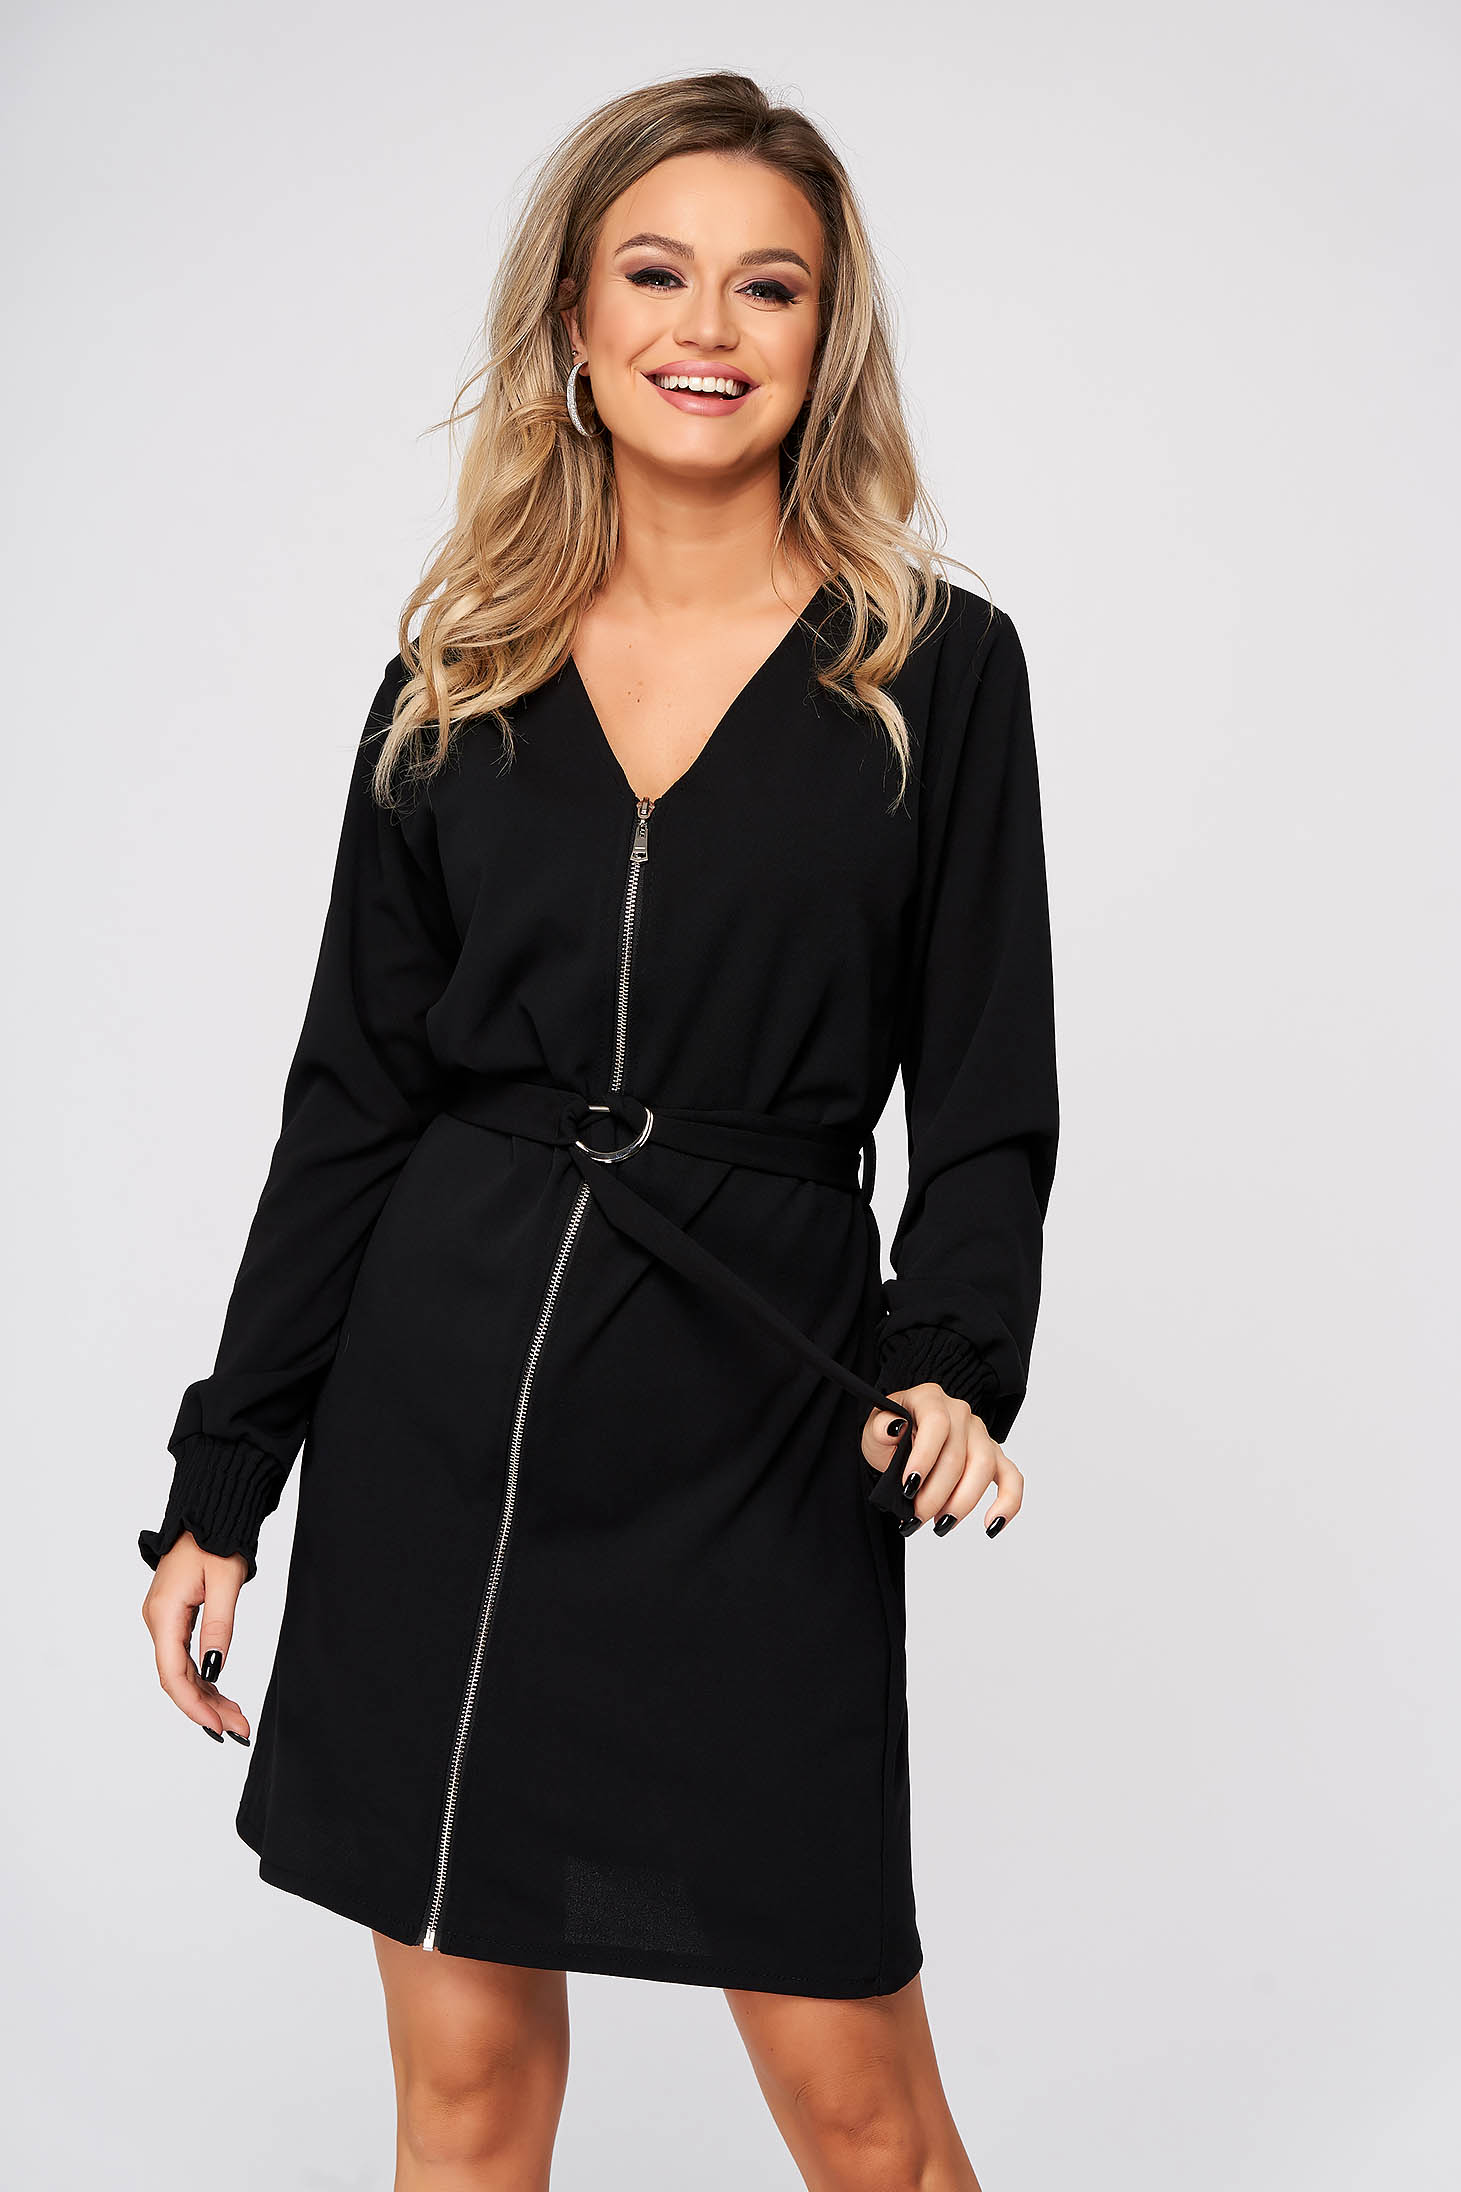 Black dress daily straight with v-neckline accessorized with tied waistband